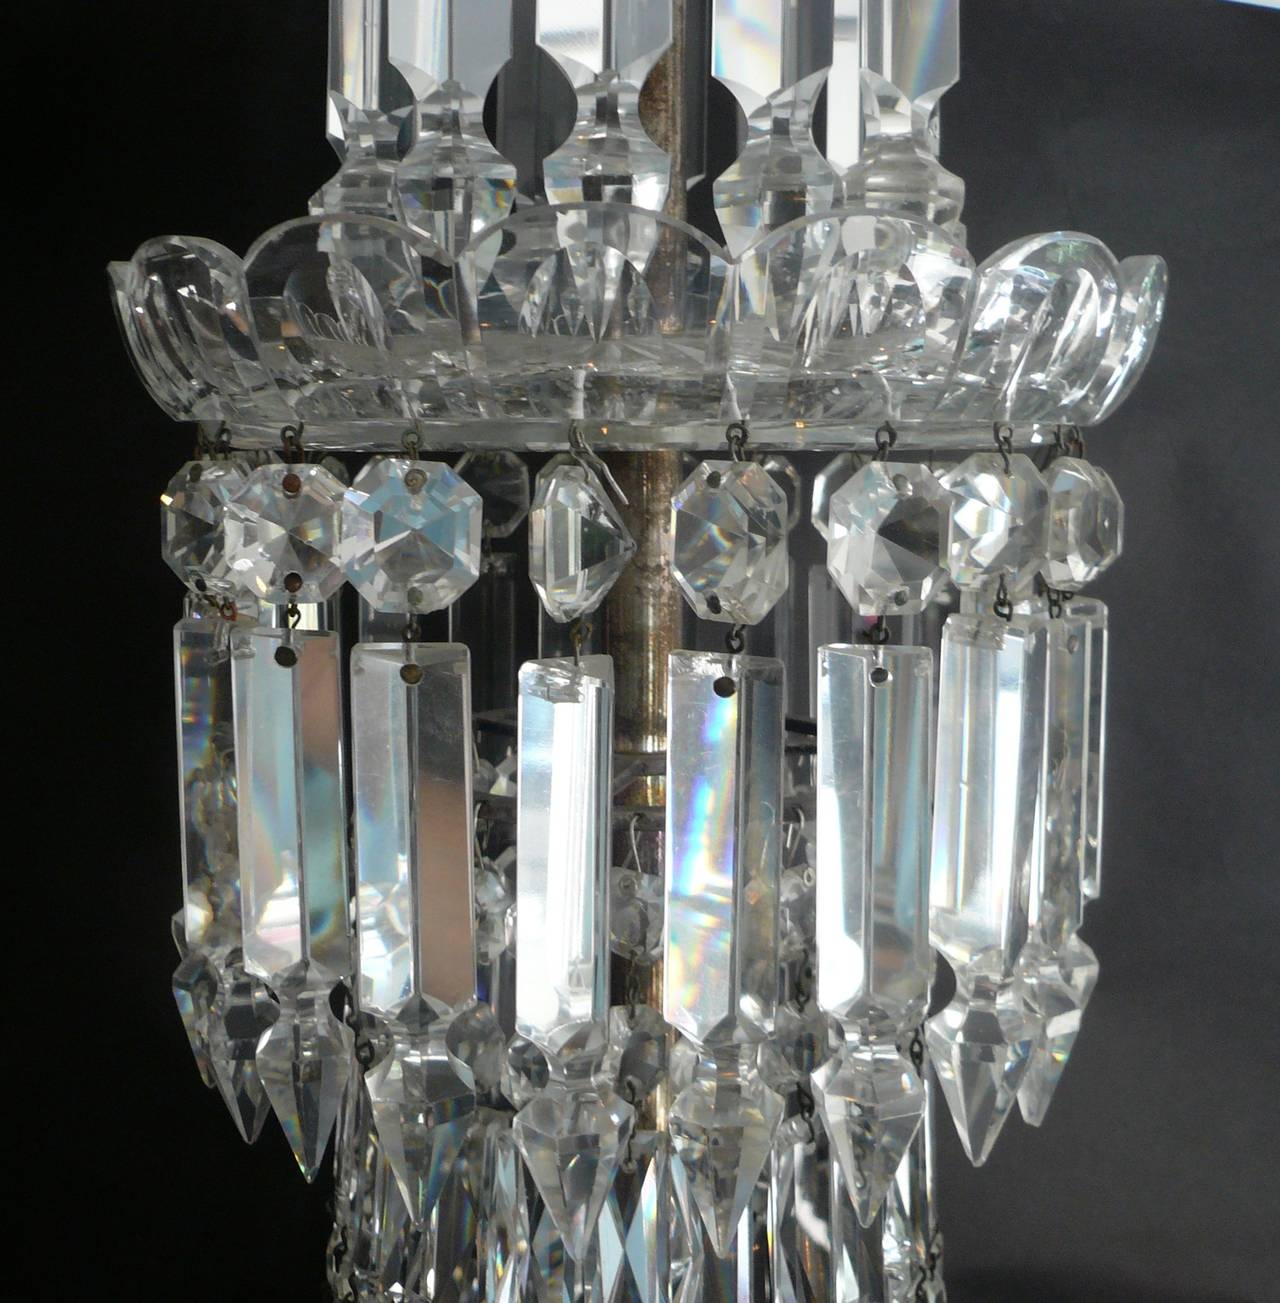 Mid-19th Century English Cut Crystal Chandelier by F. & C. Osler In Good Condition For Sale In Pittsburgh, PA